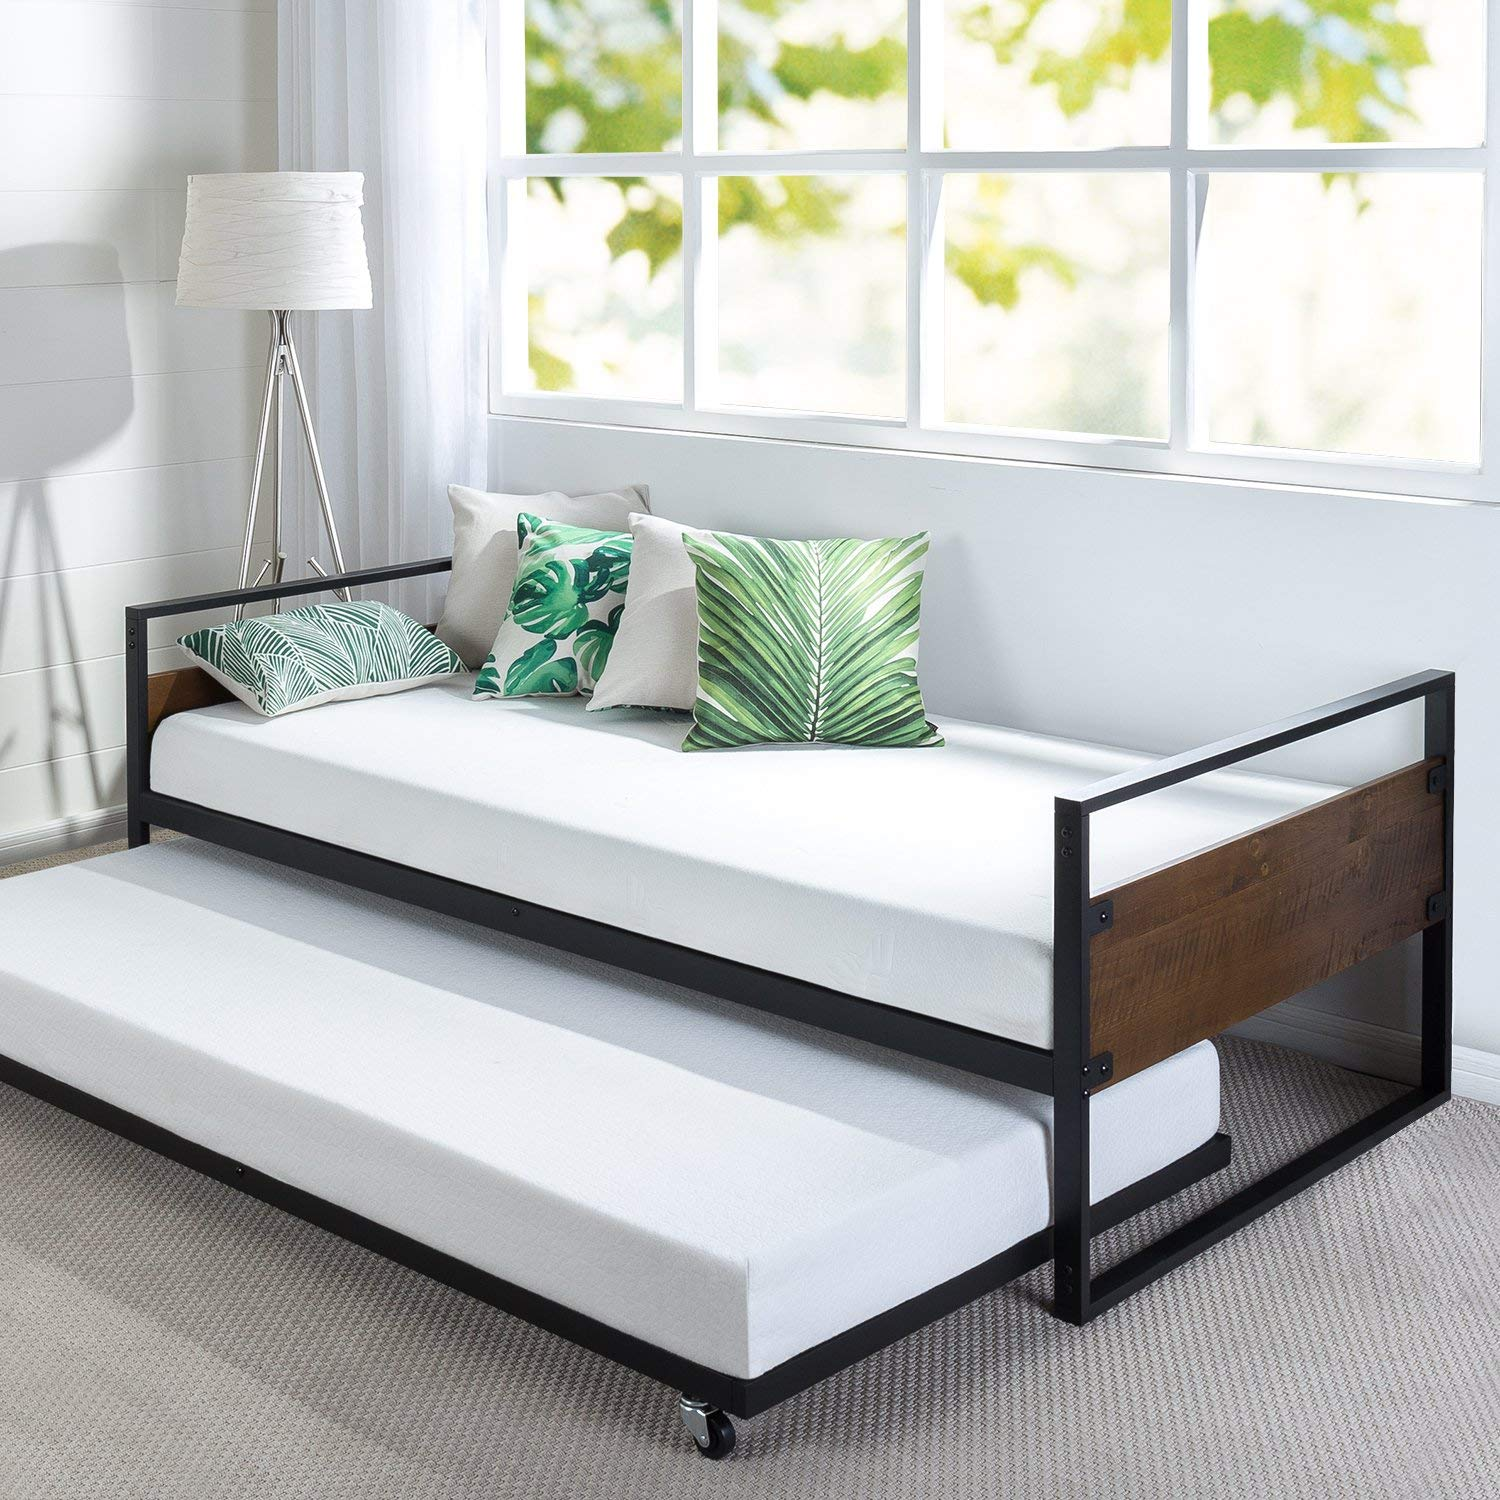 Zinus Suzanne Best Trundle Bed review by www.dailysleep.org